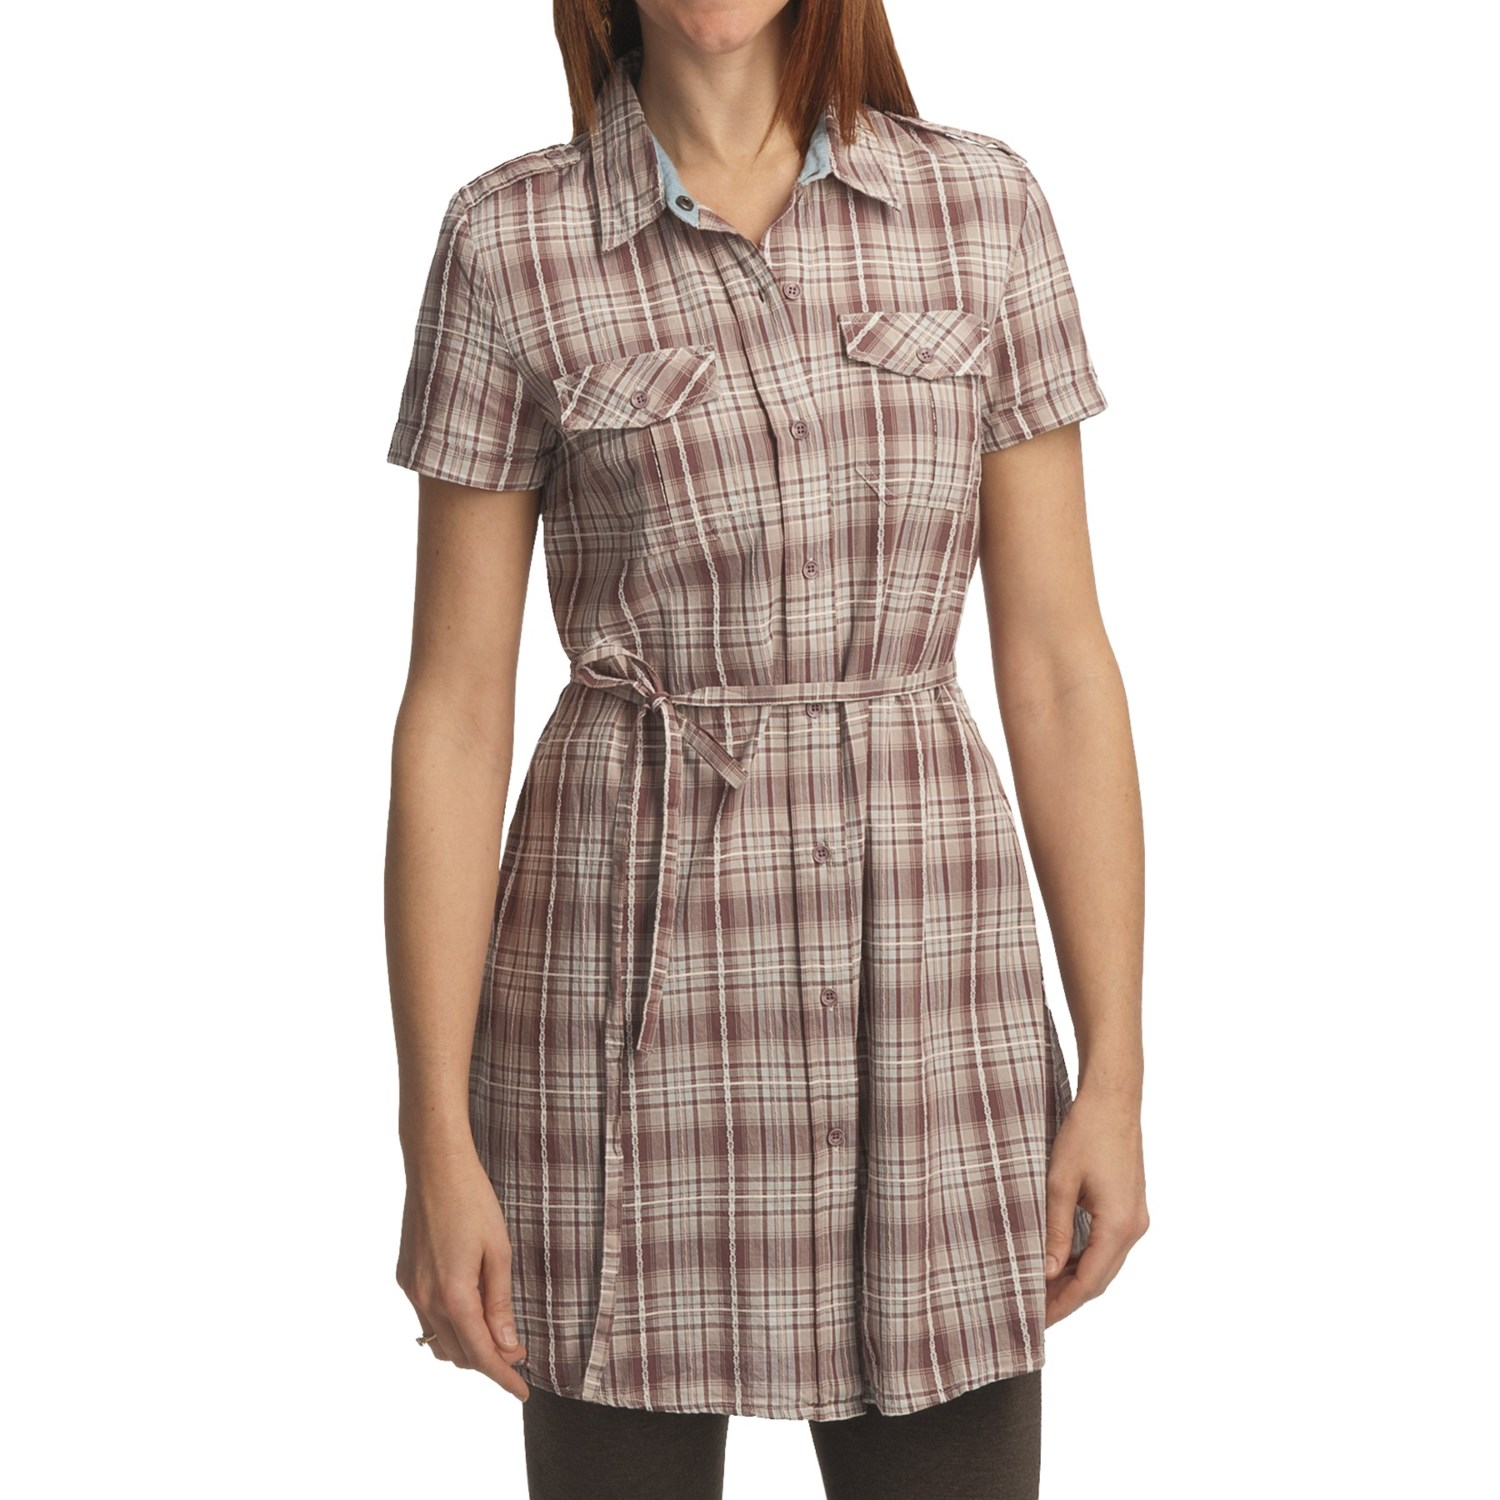 Brilliant A Black And White Plaid Design Adds A Casualcool Edge To This Plaid Shirtdress From Spenser Jeremy This Shortsleeve Dress Has All Of The Comfortable Details Youre Looking For In A Casual Getup  The Loose Silhouette And Highlow Hem Will